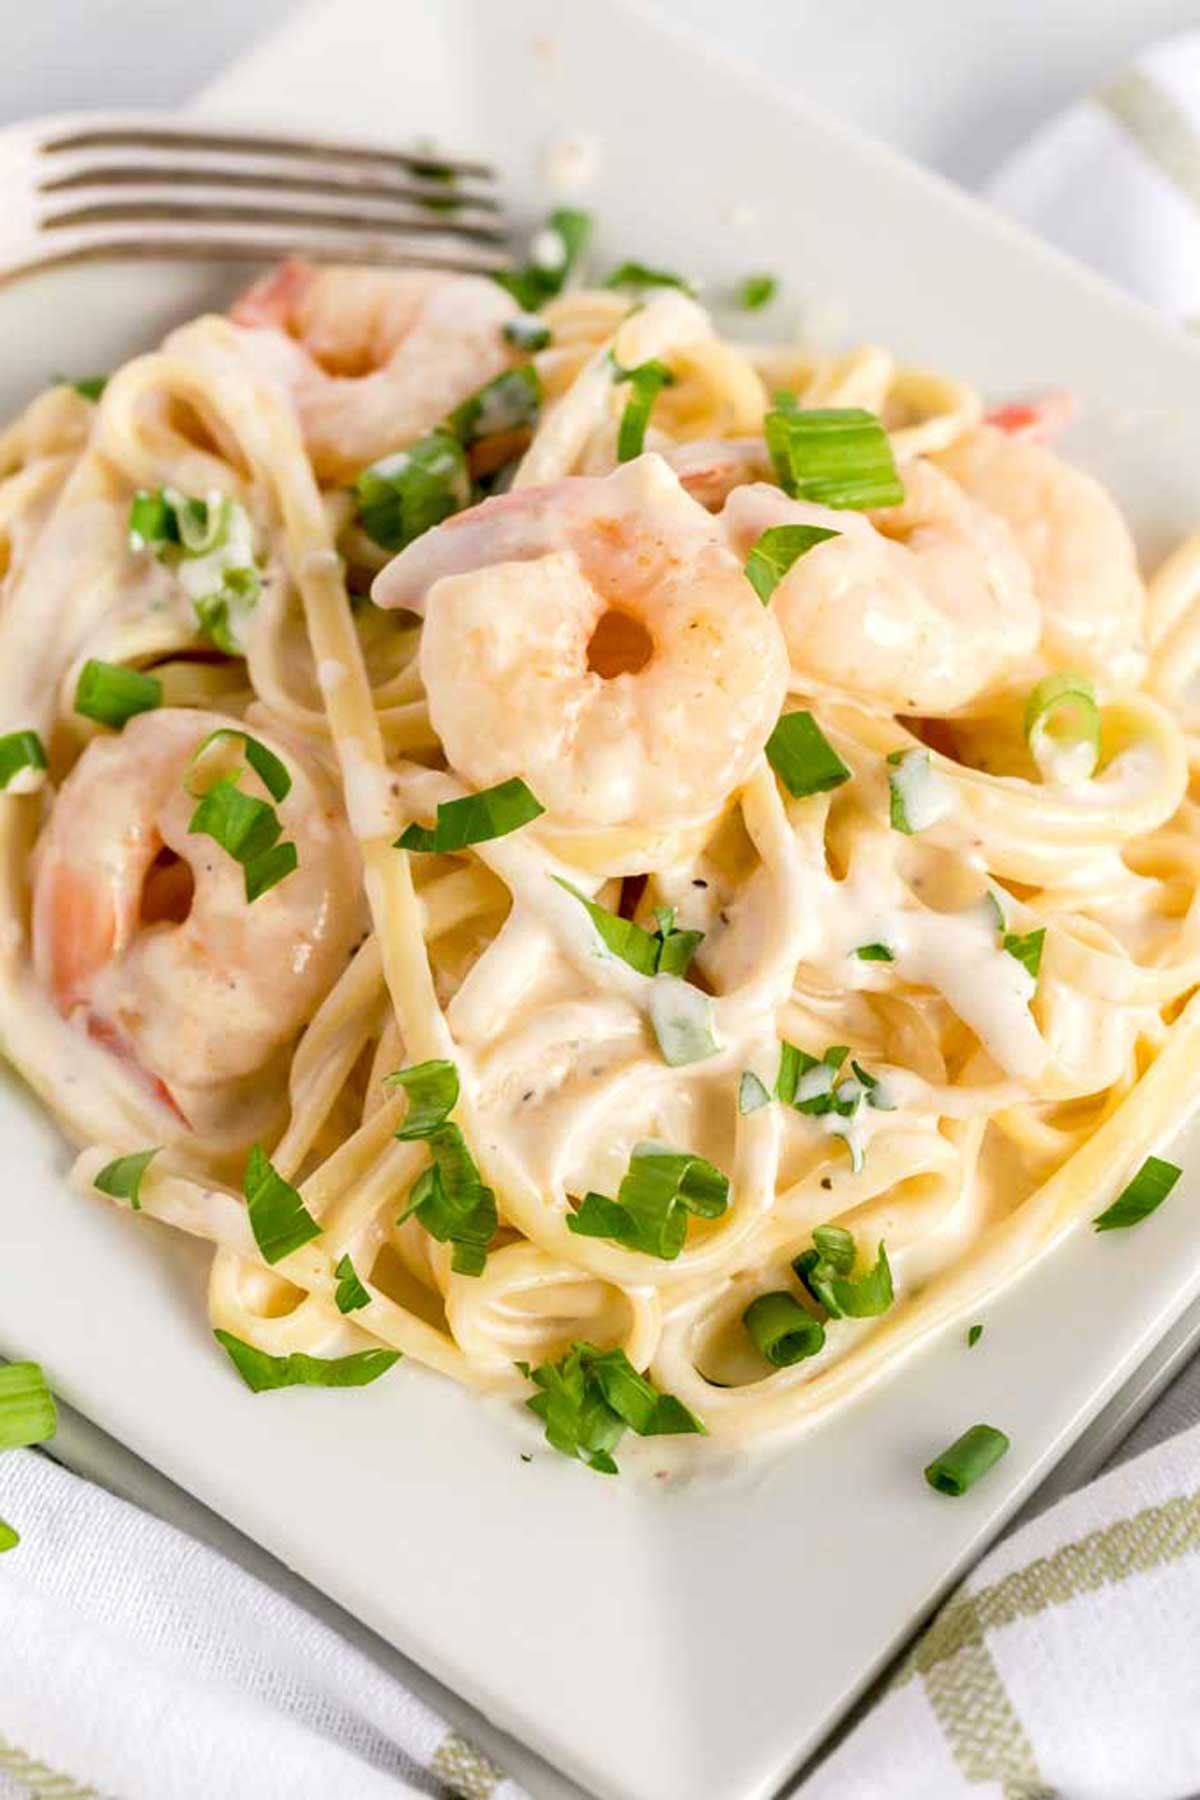 Cajun Shrimp and Pasta tossed in a creamy sauce on a white plate.